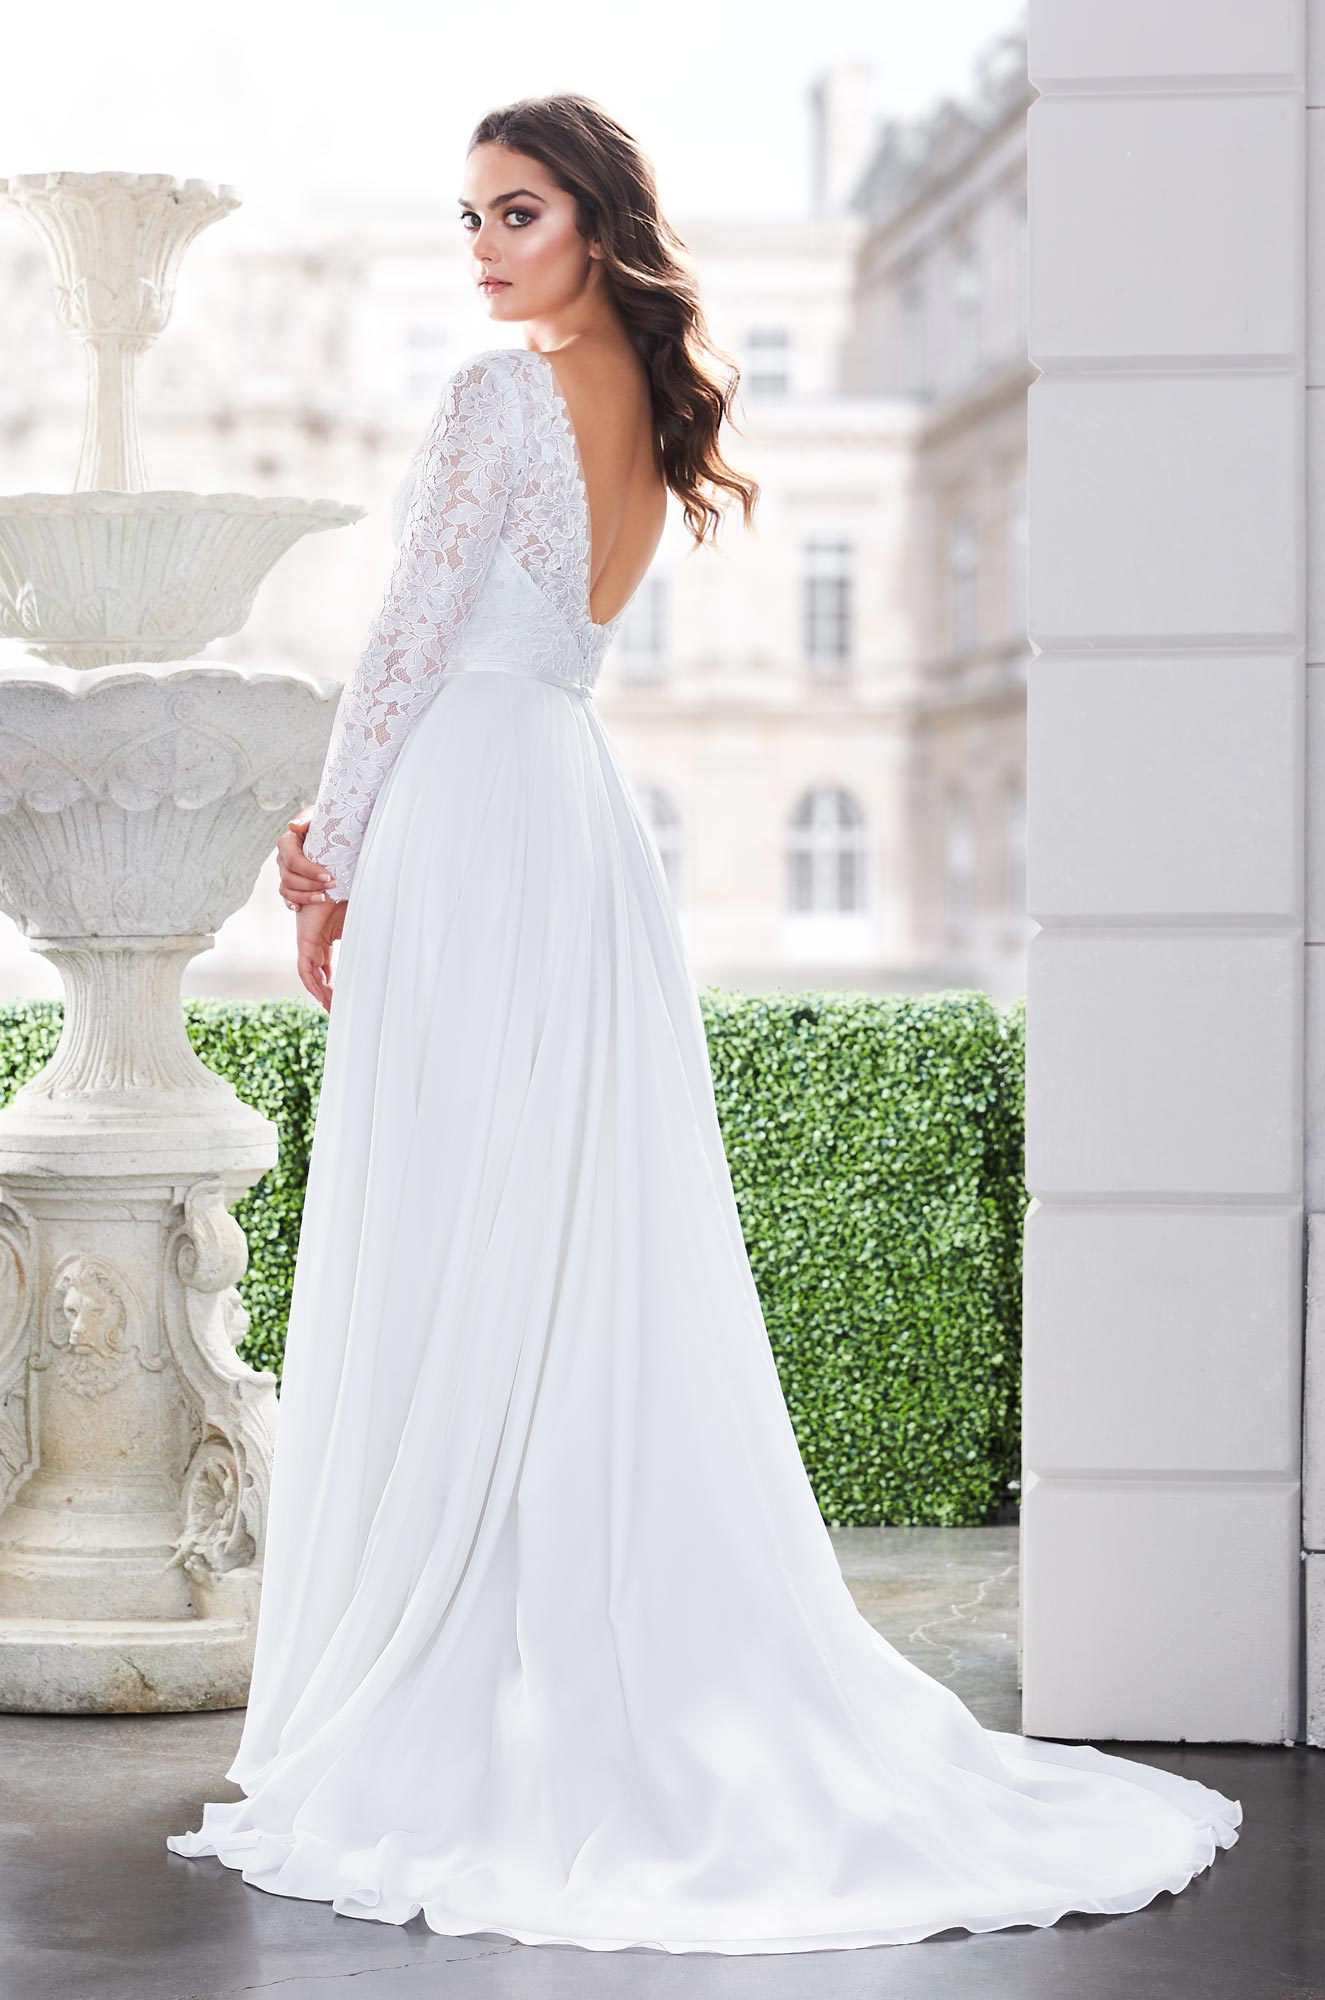 Romantic Lace Sleeve Wedding Dress - Style #4870 | Paloma Blanca